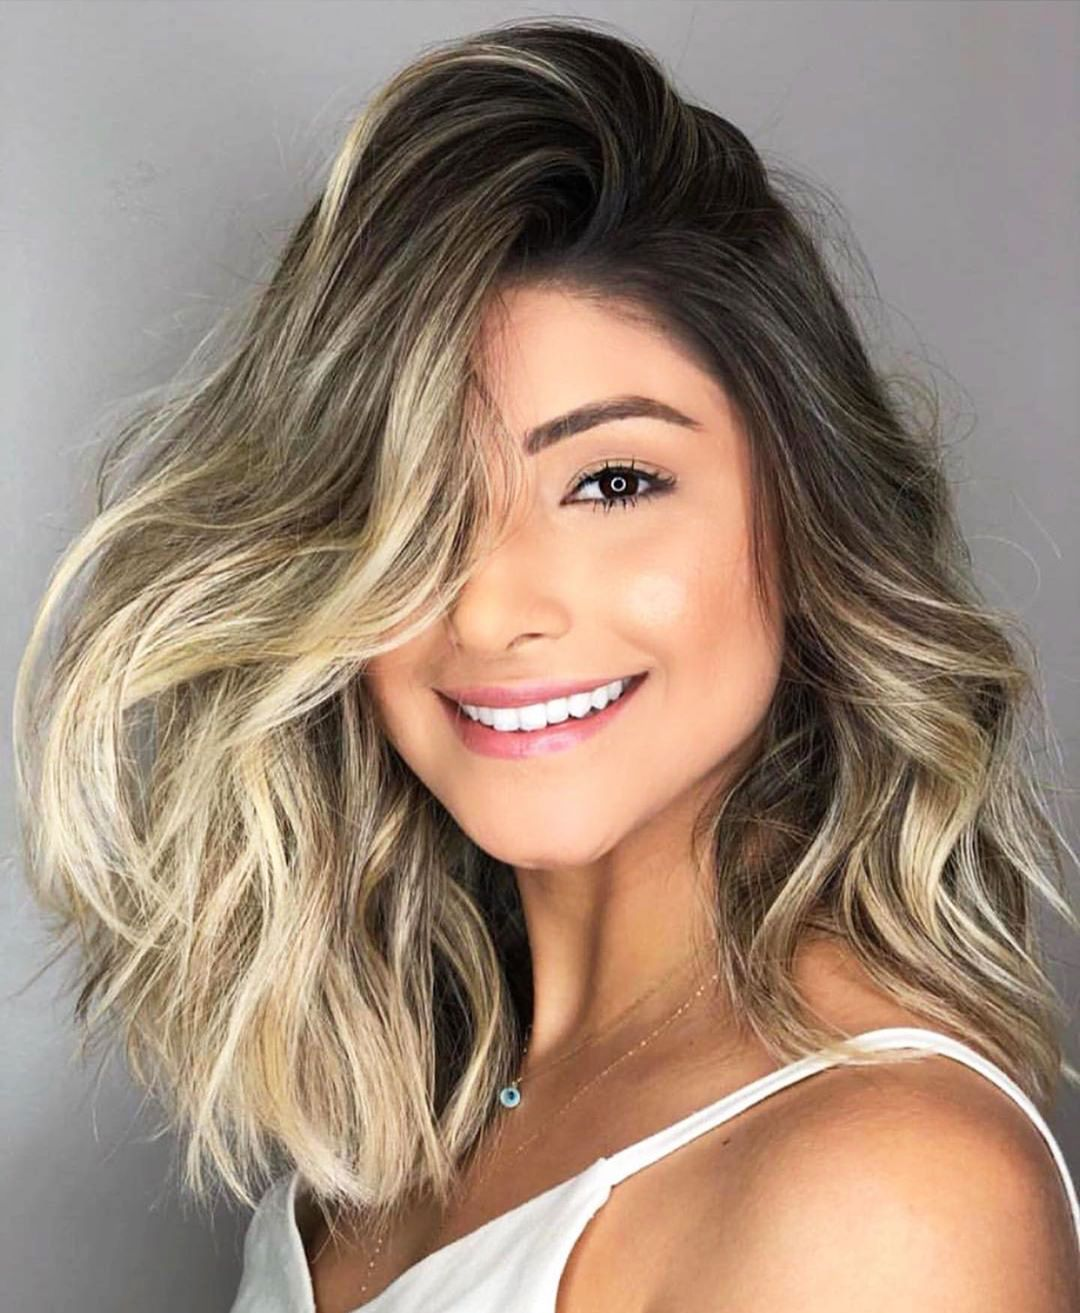 these easytomanage short hairstyles for women are